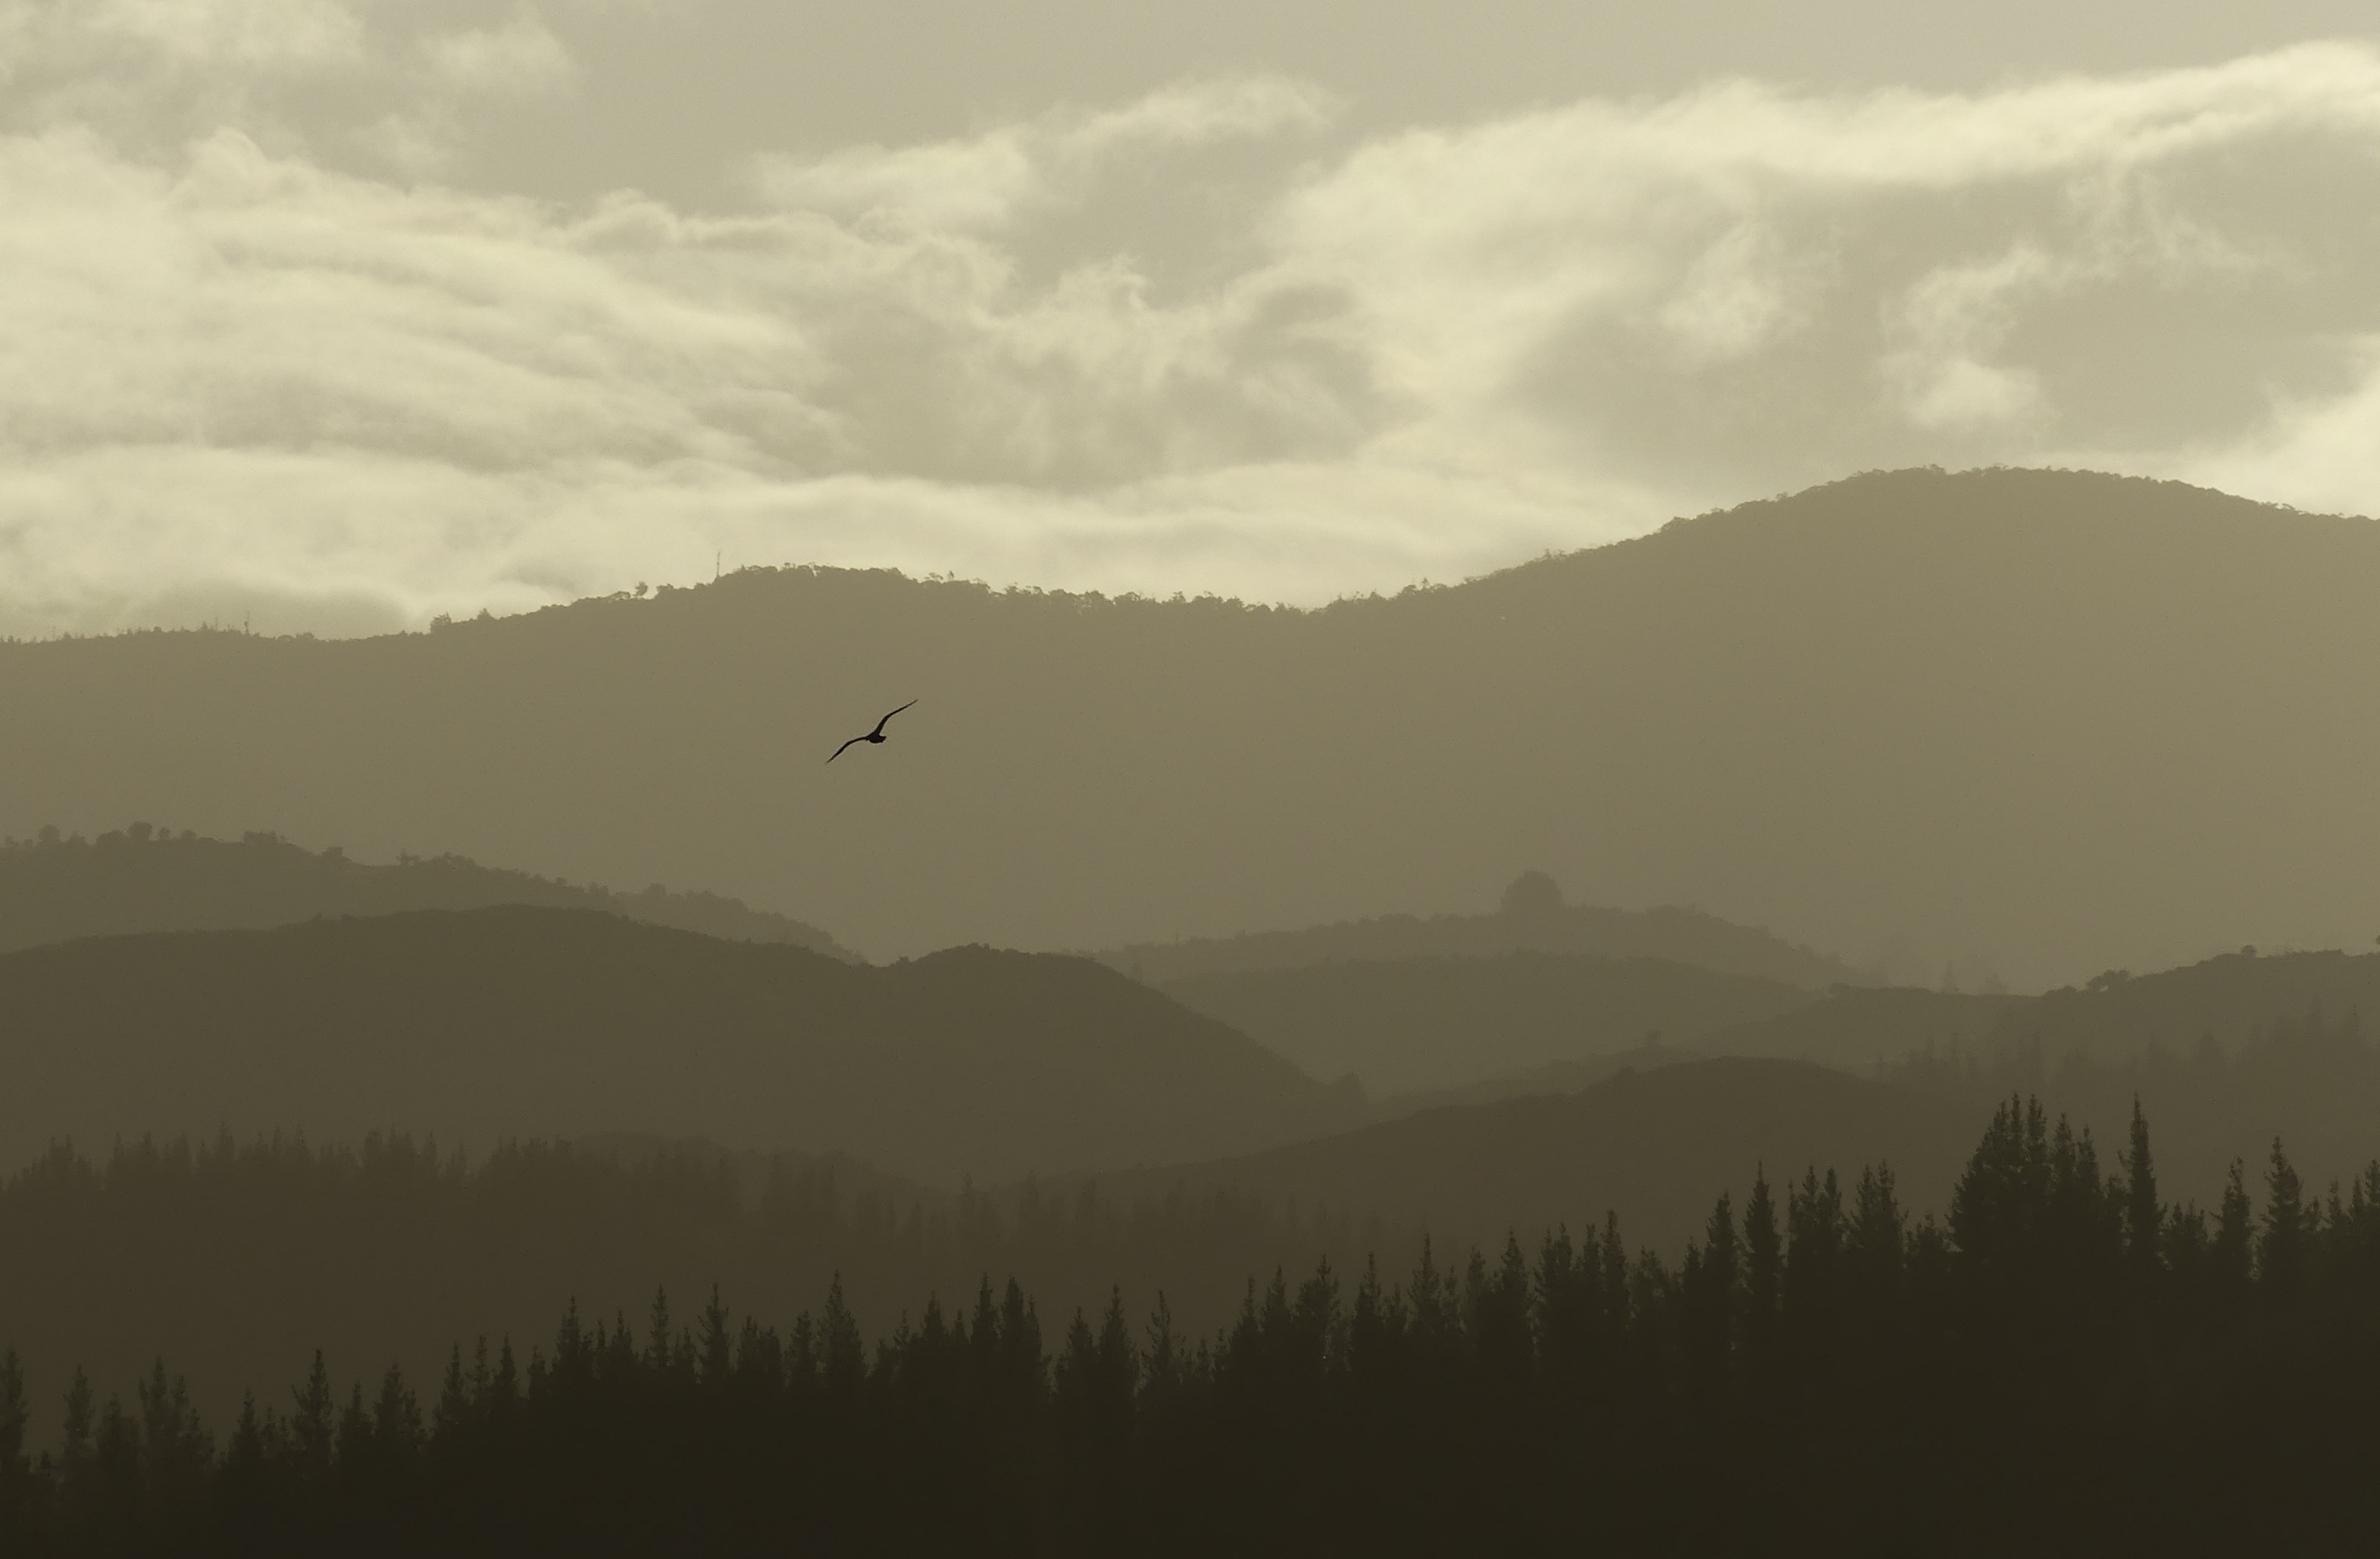 A hazy shot of a silhouette of a bird above wooded hills